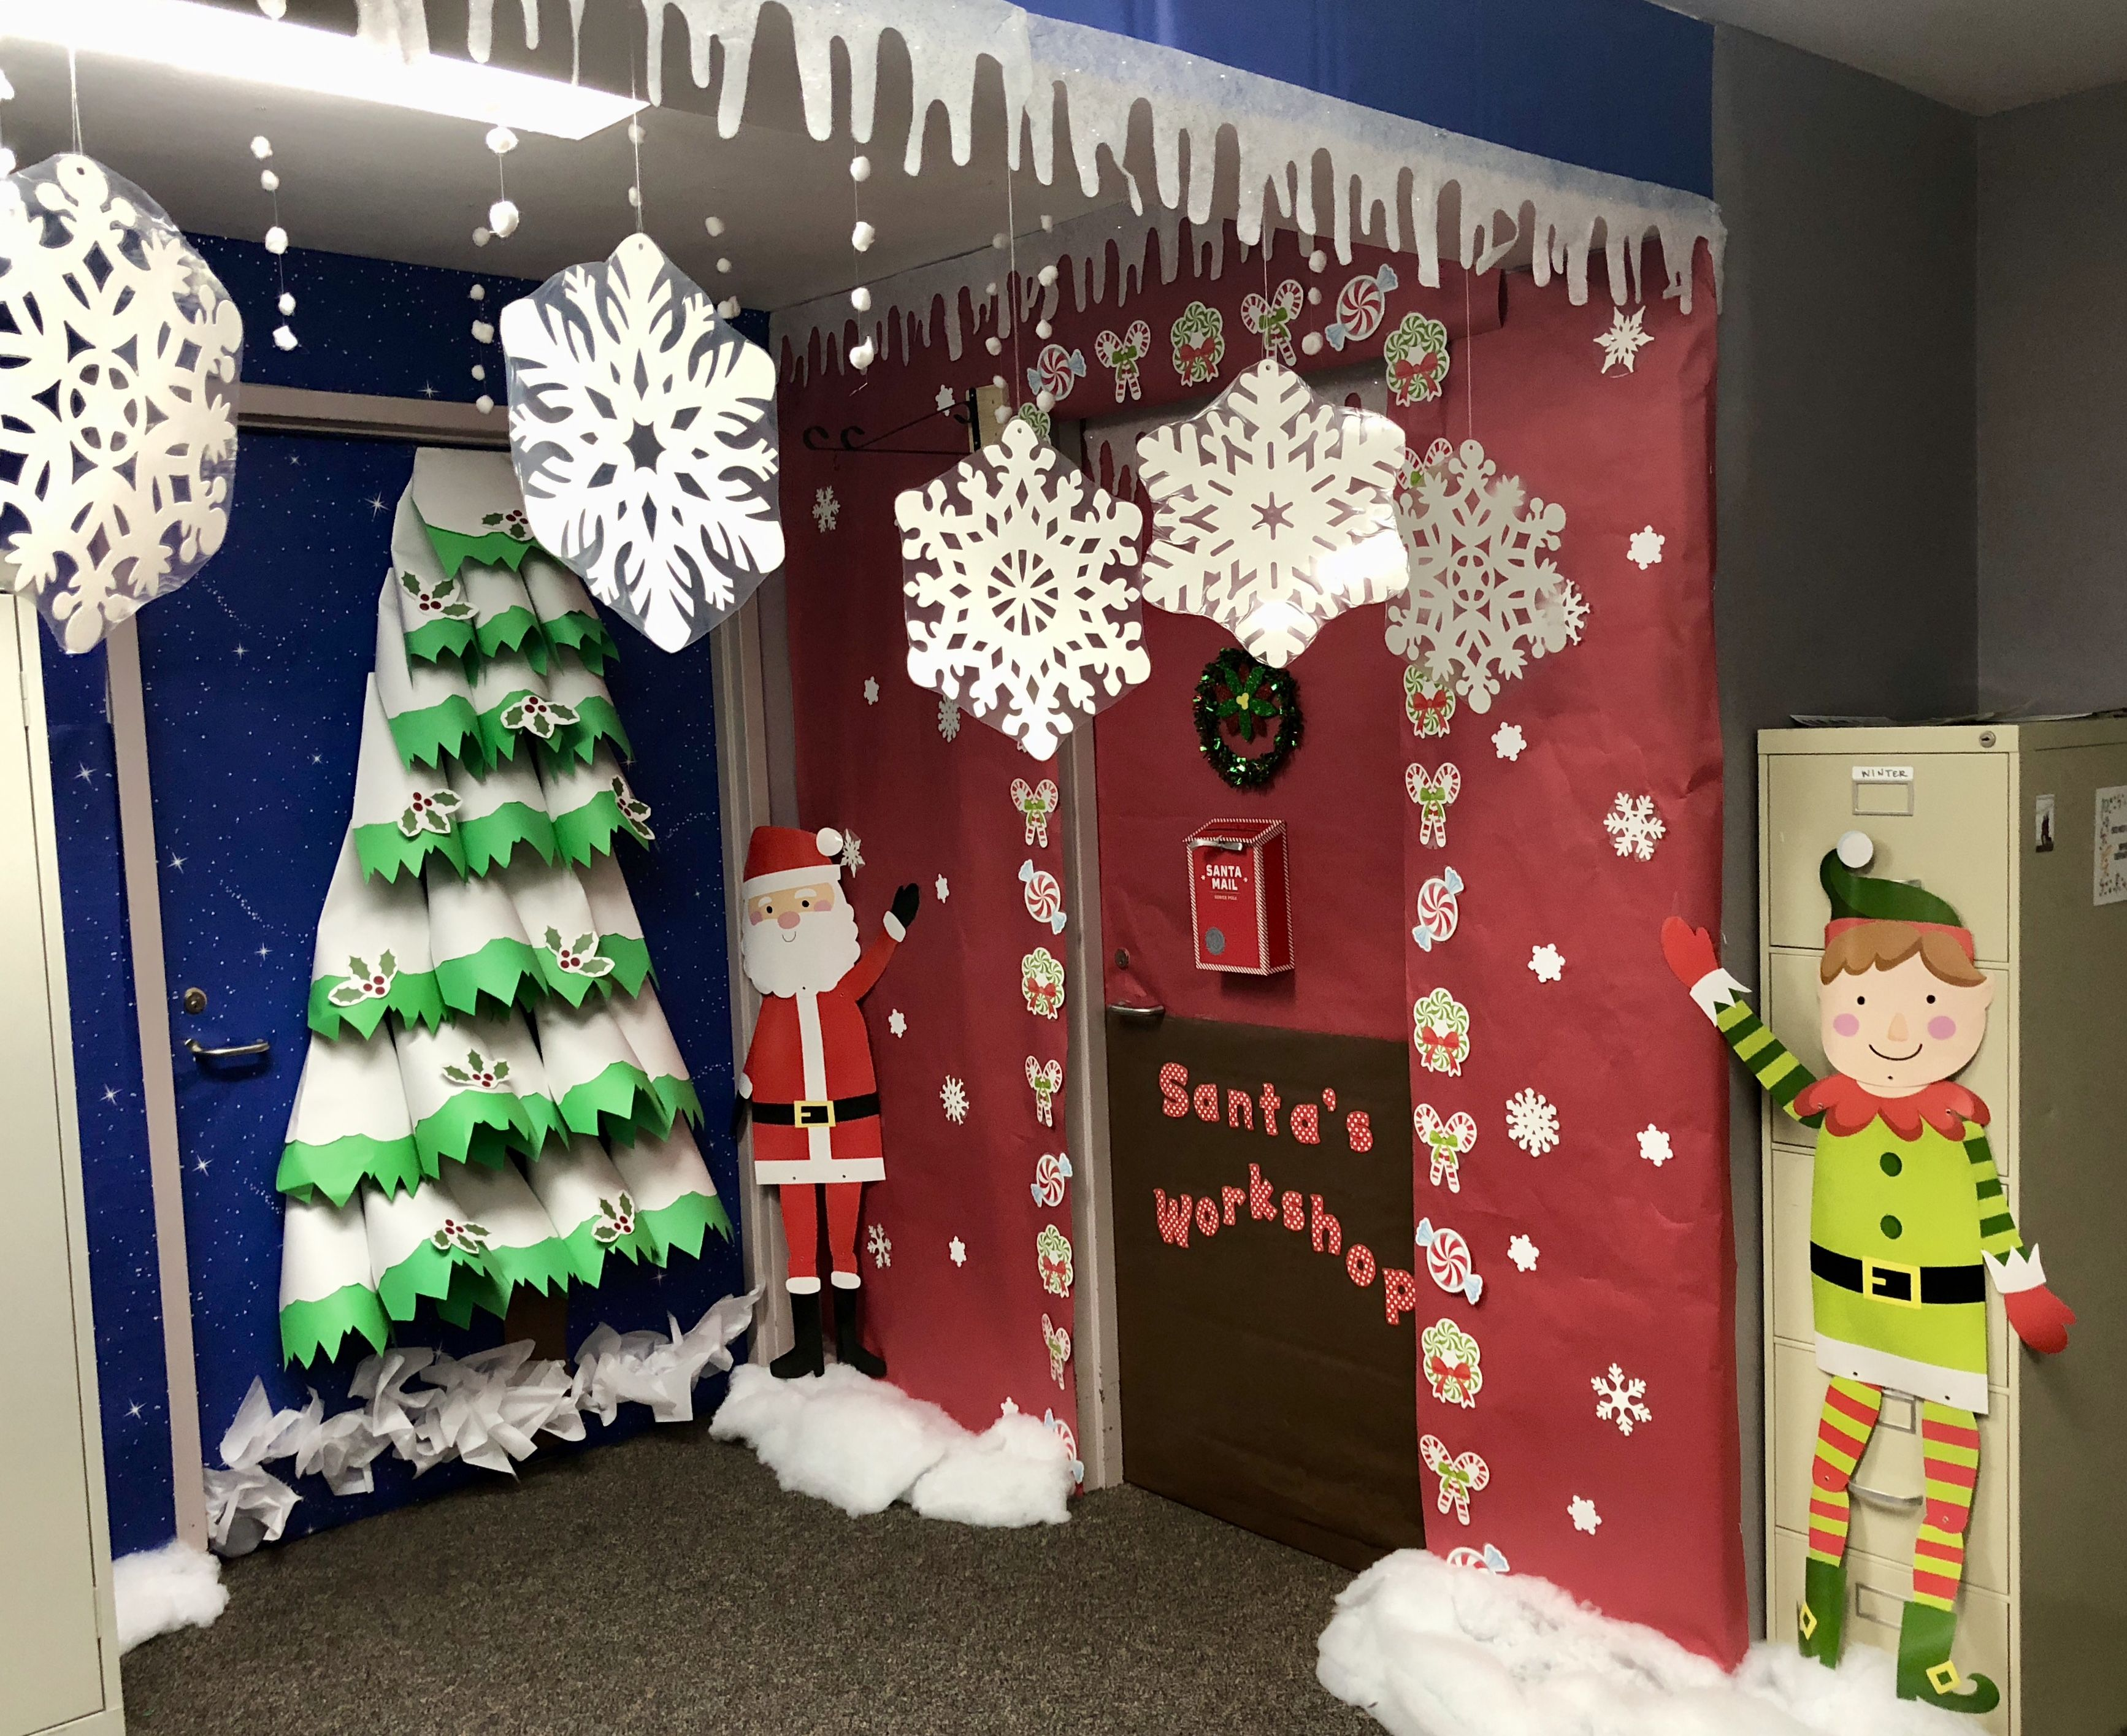 Santa\u0027s Workshop school decoration idea. ❤️ Christmas